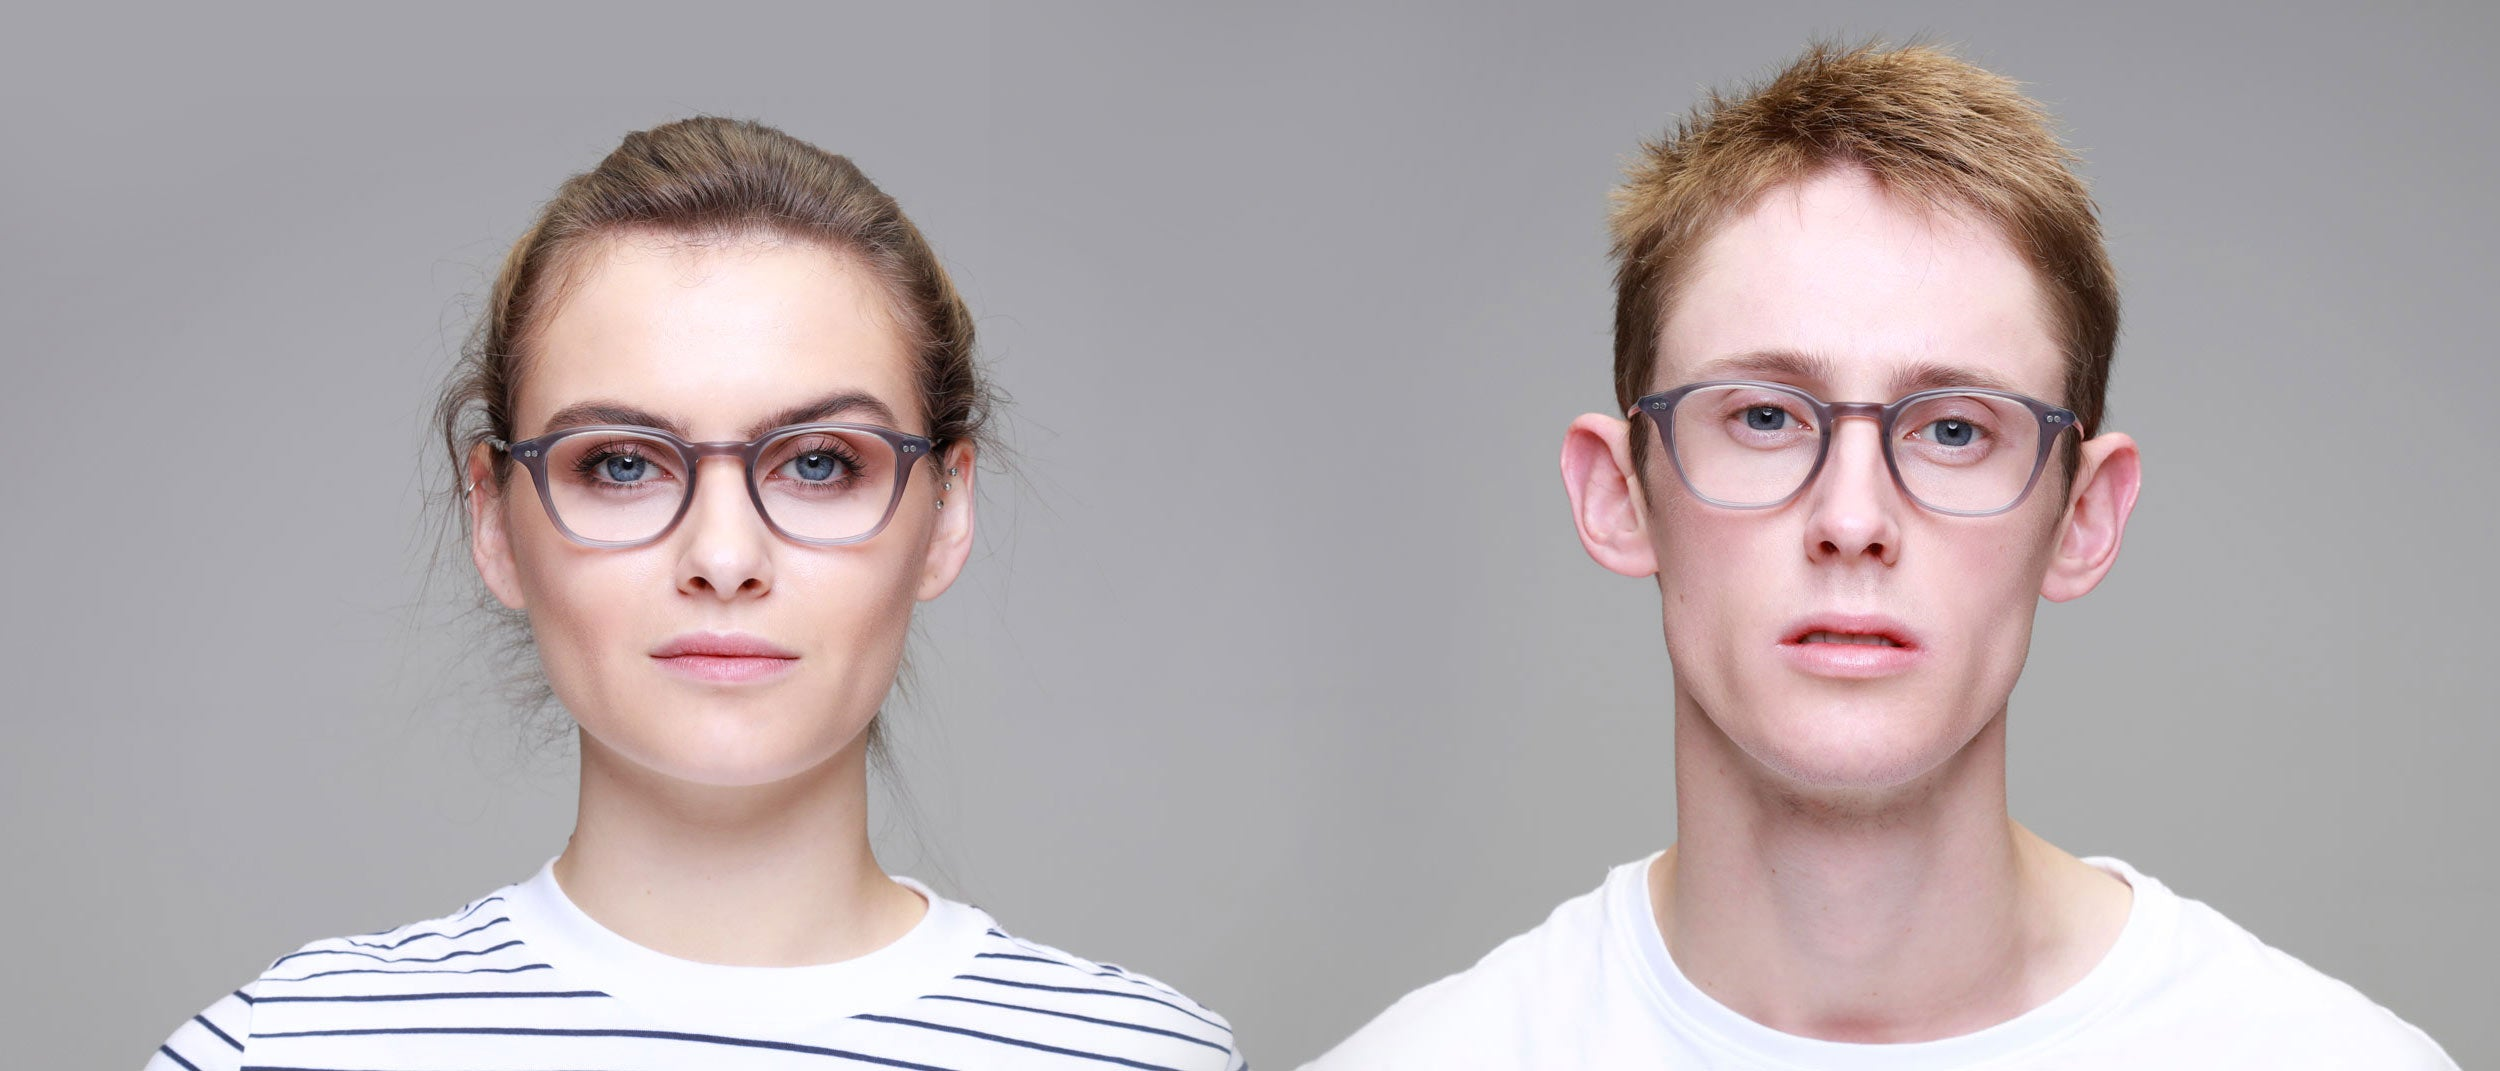 Man-and-Woman-Wearing-Varifocal-Grey-rectangle-frame-glasses